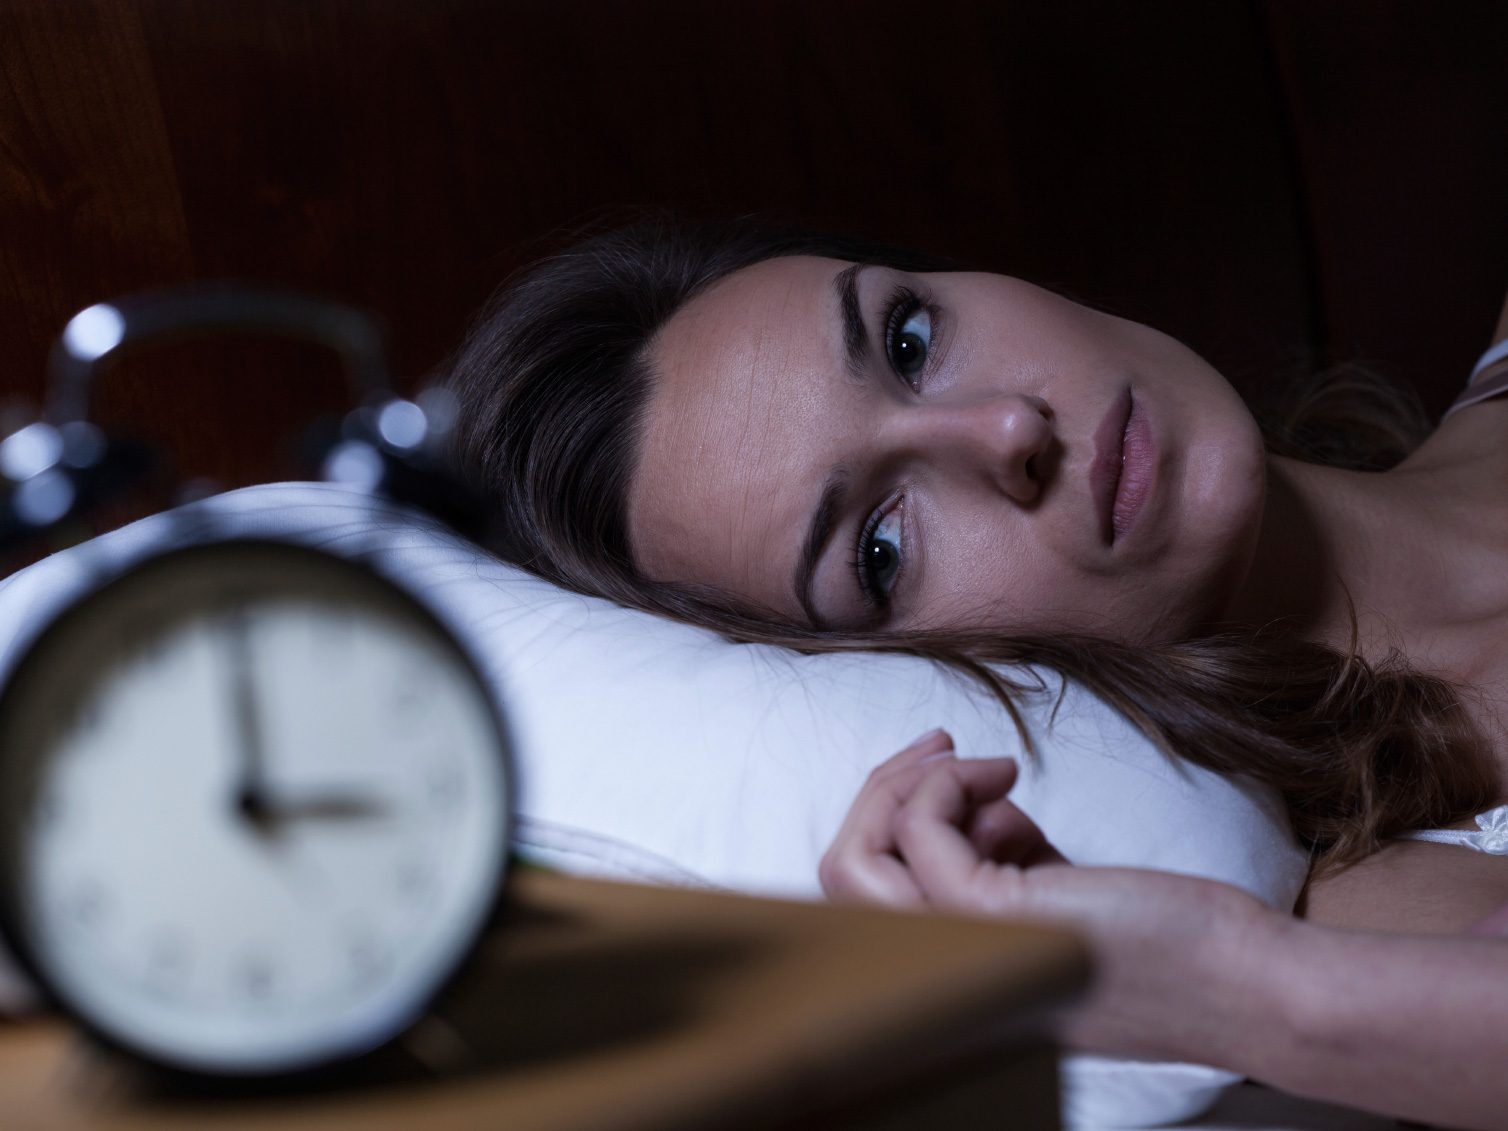 40% of Canadian Adults Exhibit Signs of Insomnia